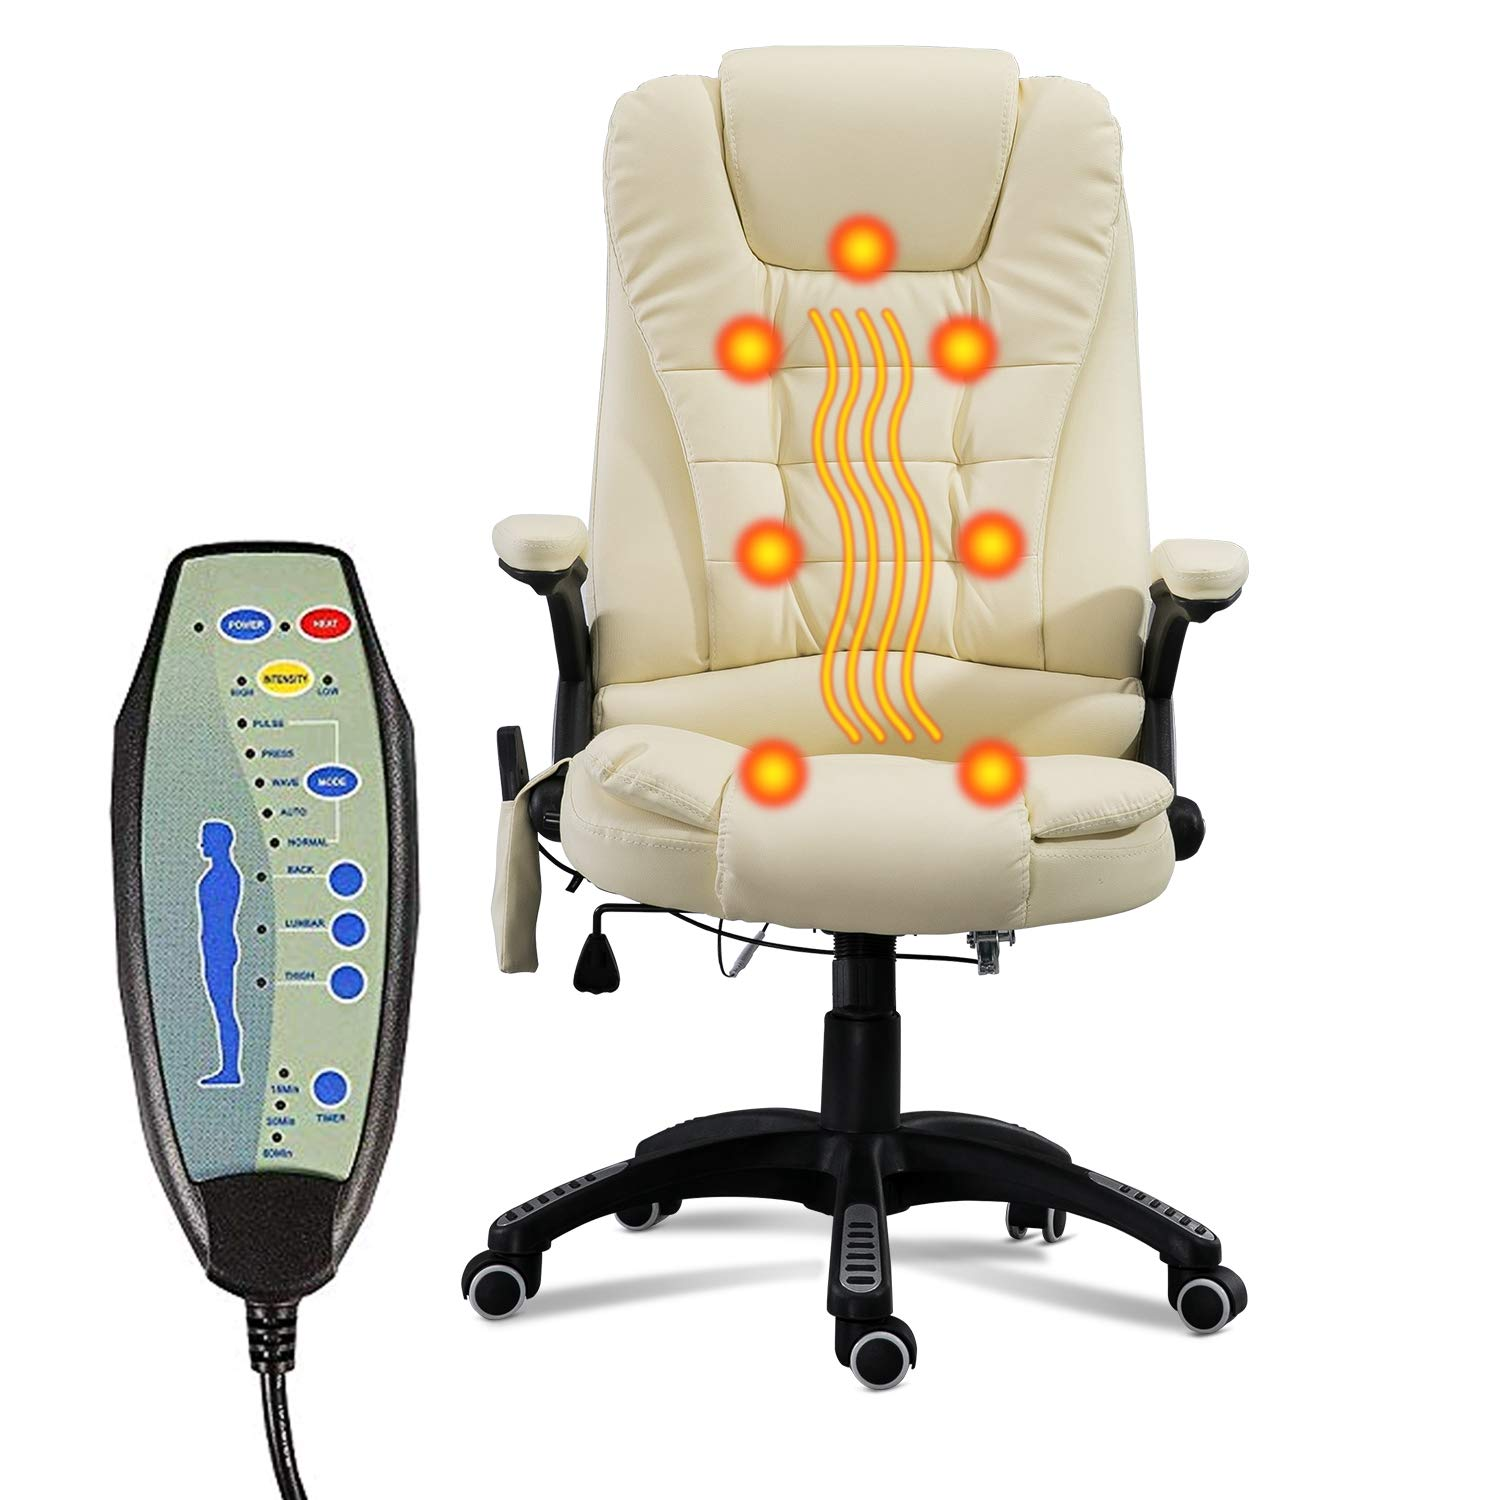 windaze Massage Chair Office Swivel Executive Ergonomic Heated Vibrating Chair for Computer Desk(Beige) by windaze